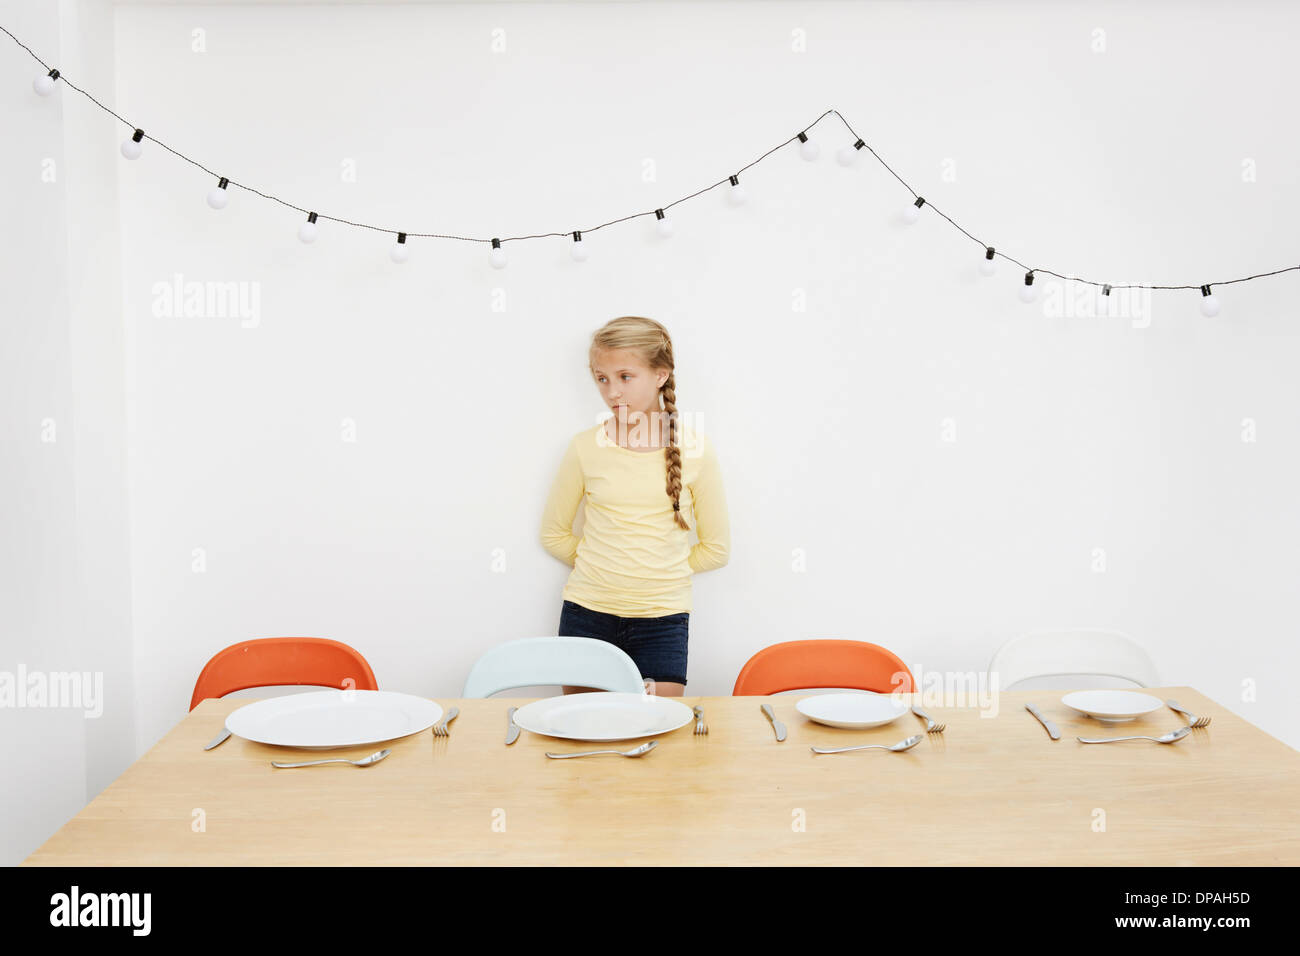 Girl waiting by table with empty plates - Stock Image